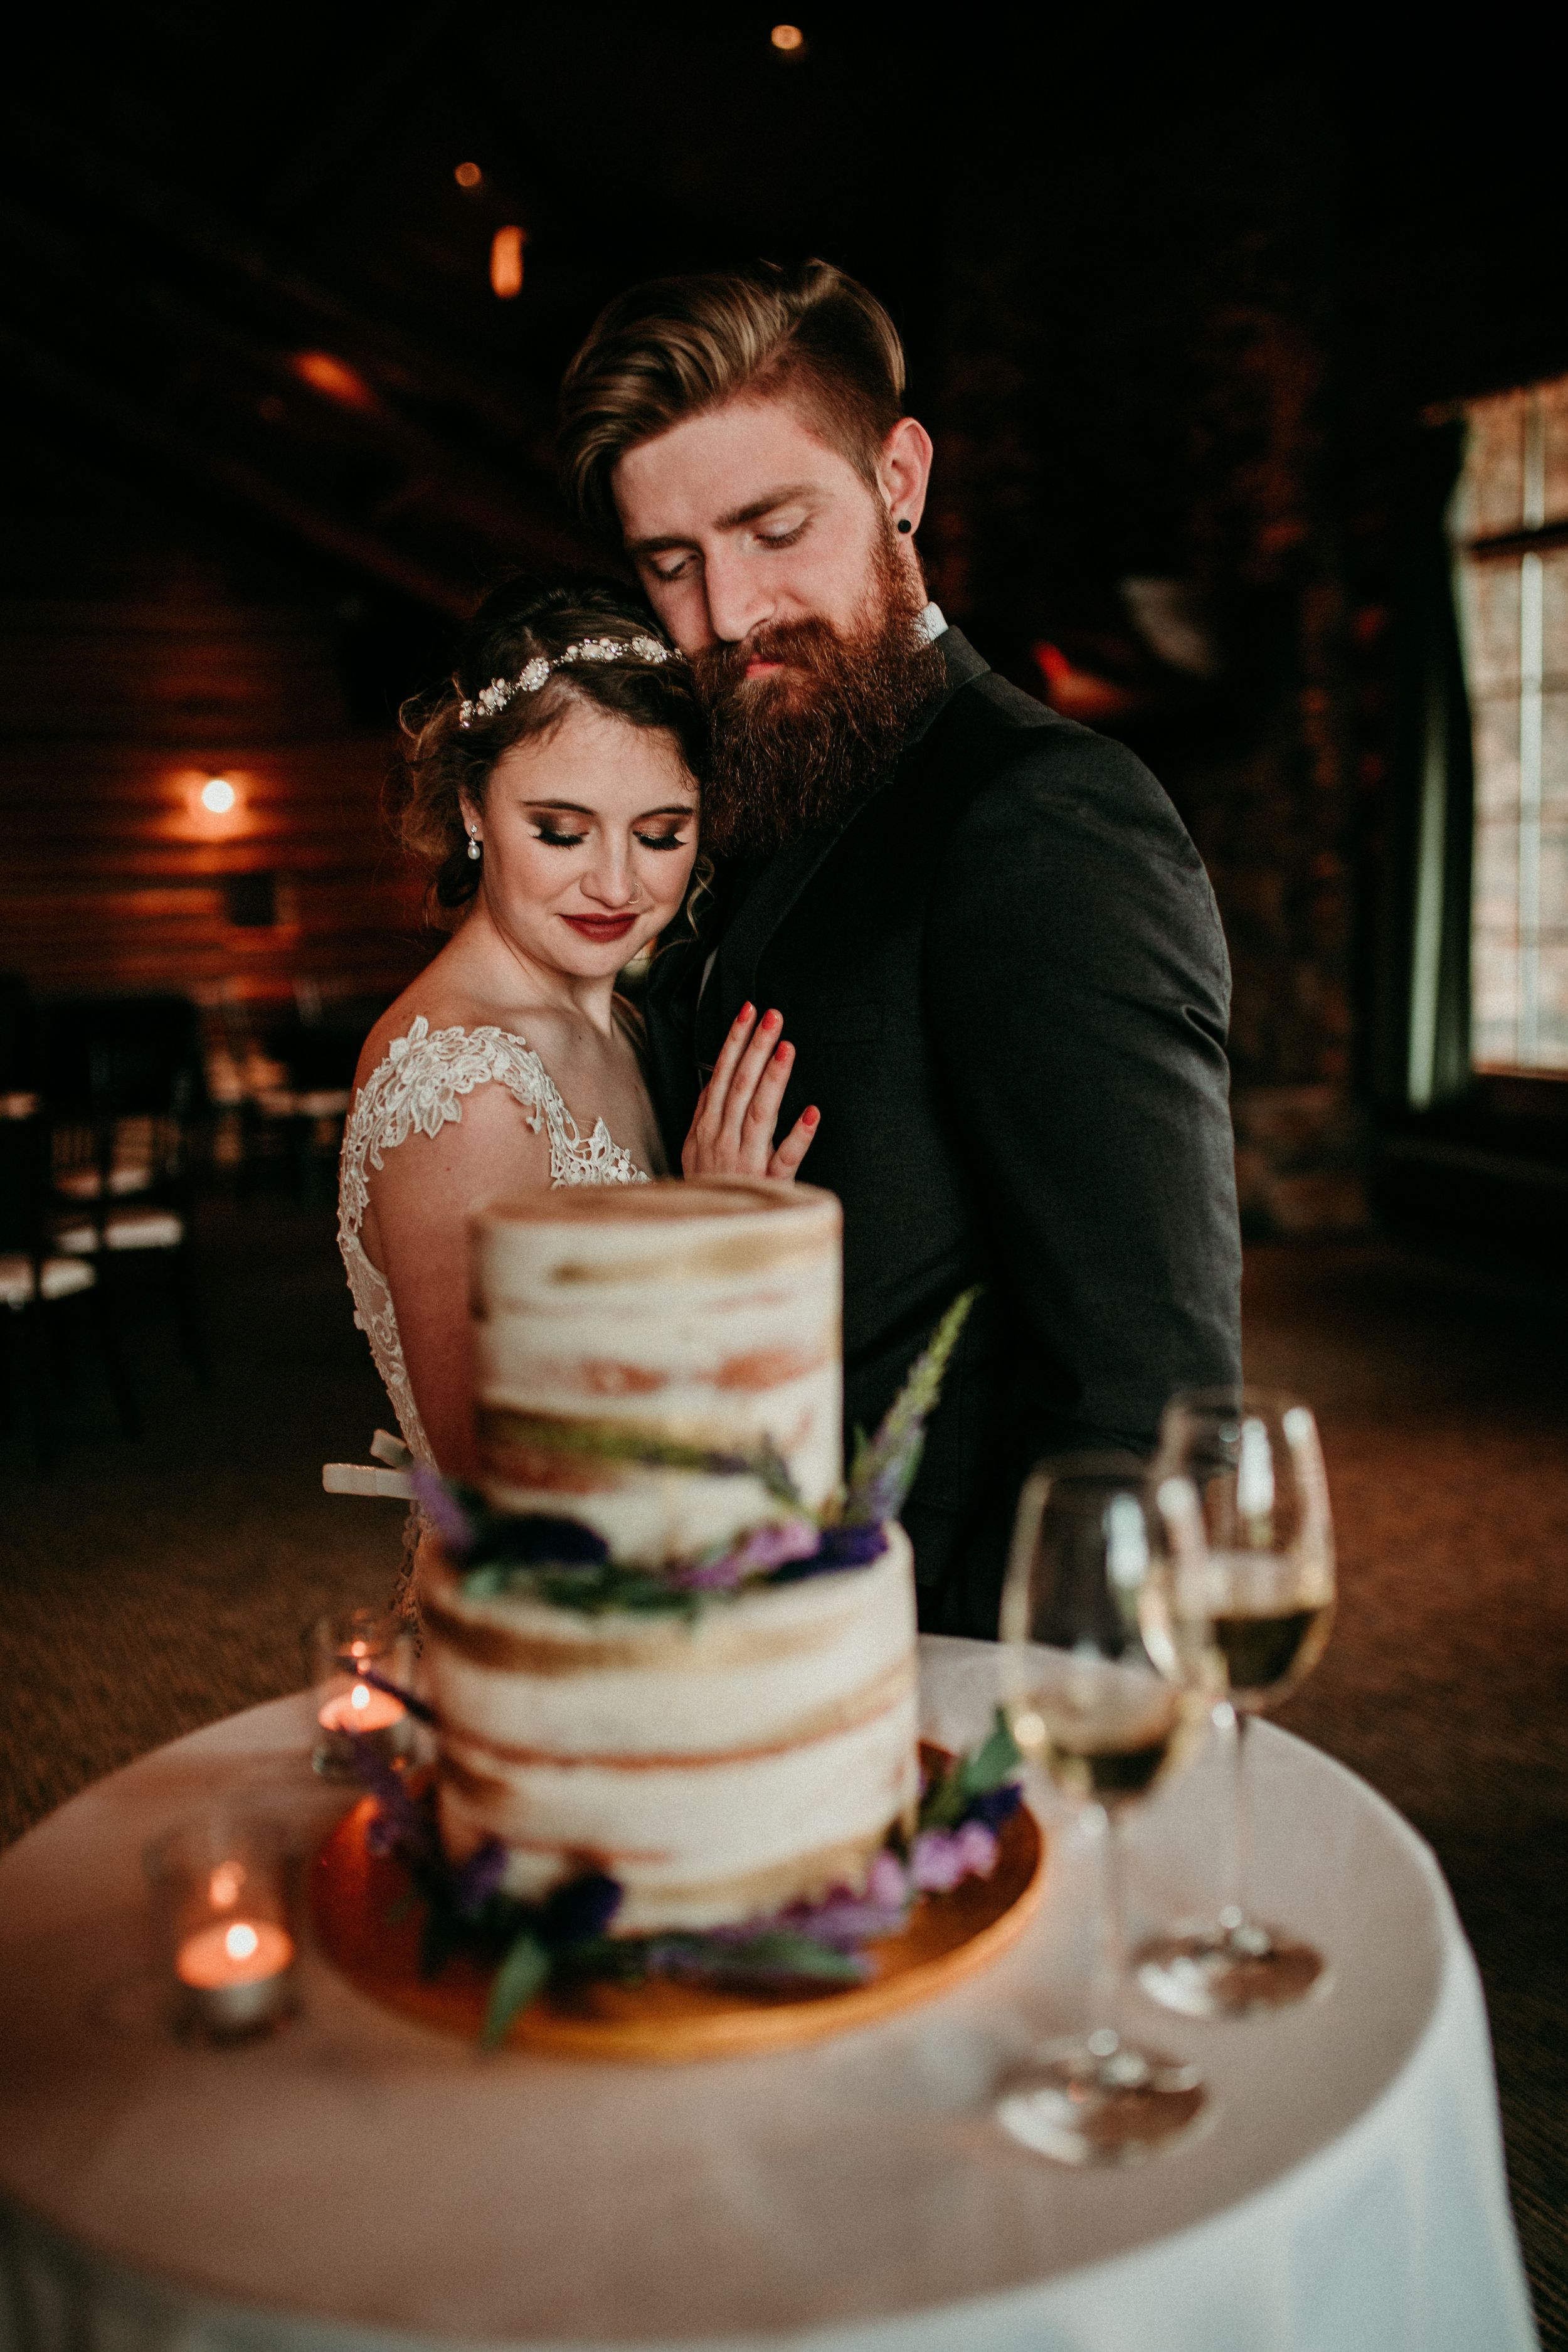 Couples and Wedding Cake